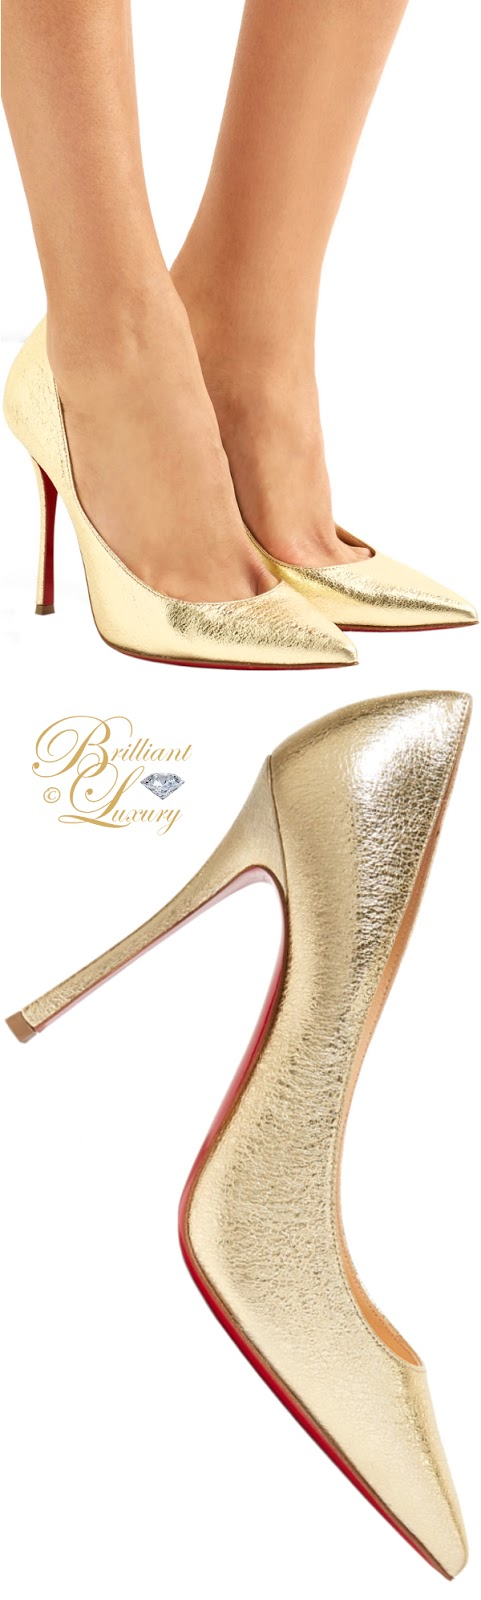 Brilliant Luxury ♦ Christian Louboutin Decoltish textured-leather pumps